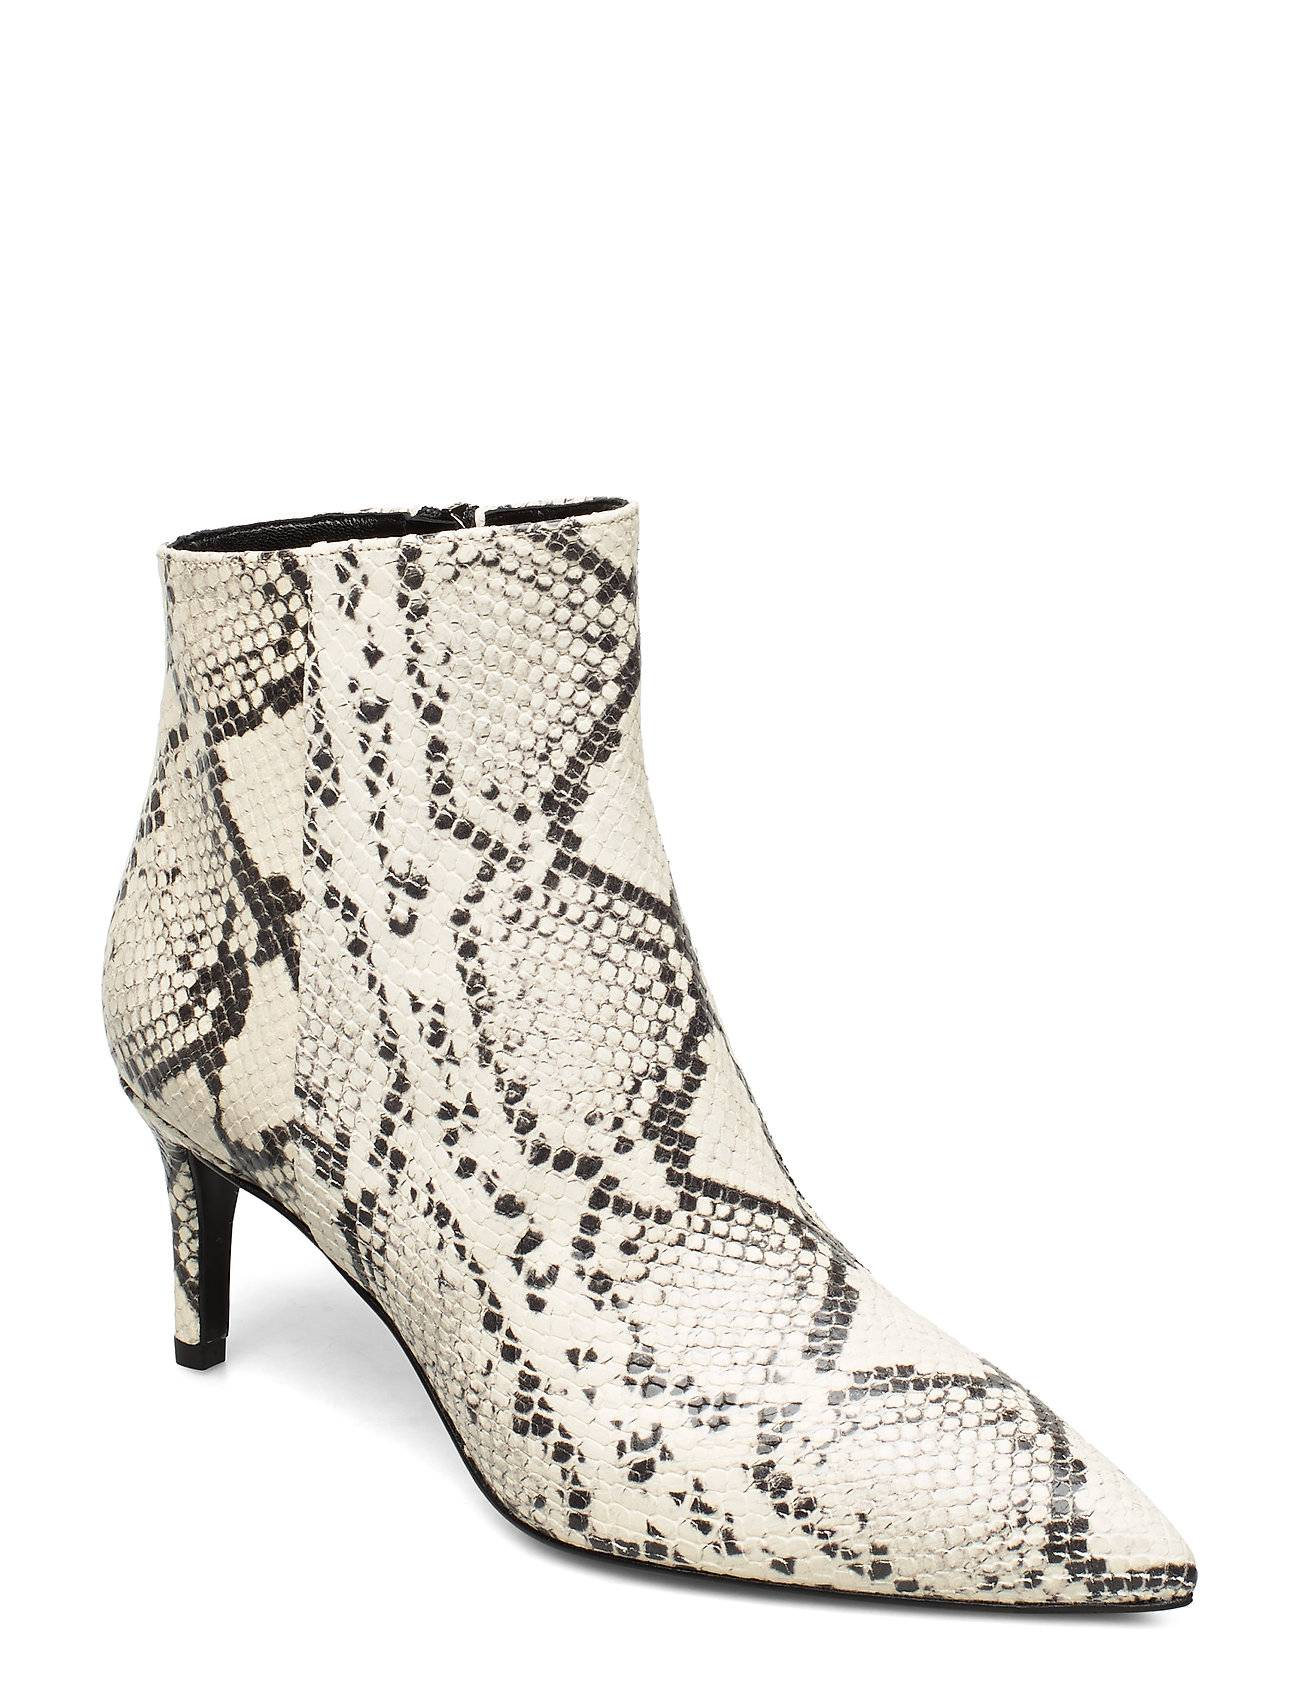 Apair Pointed Bootie Low High Front Shoes Boots Ankle Boots Ankle Boots With Heel Kermanvärinen Apair